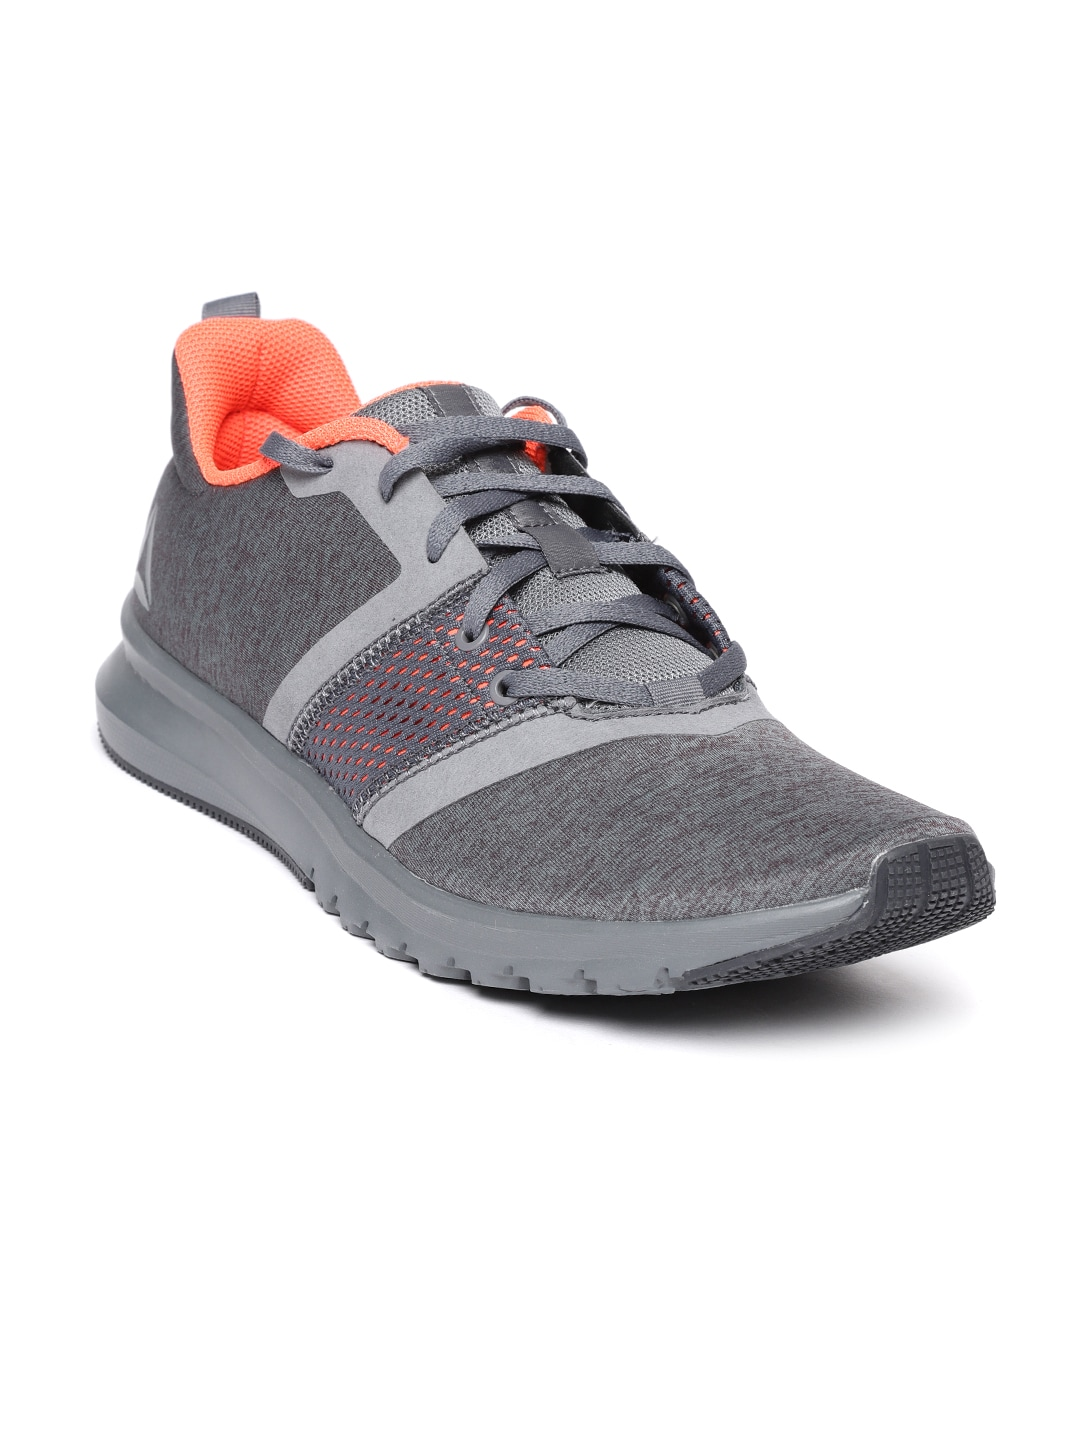 Reebok Shoes - Buy Reebok Shoes For Men   Women Online 2e2204b143